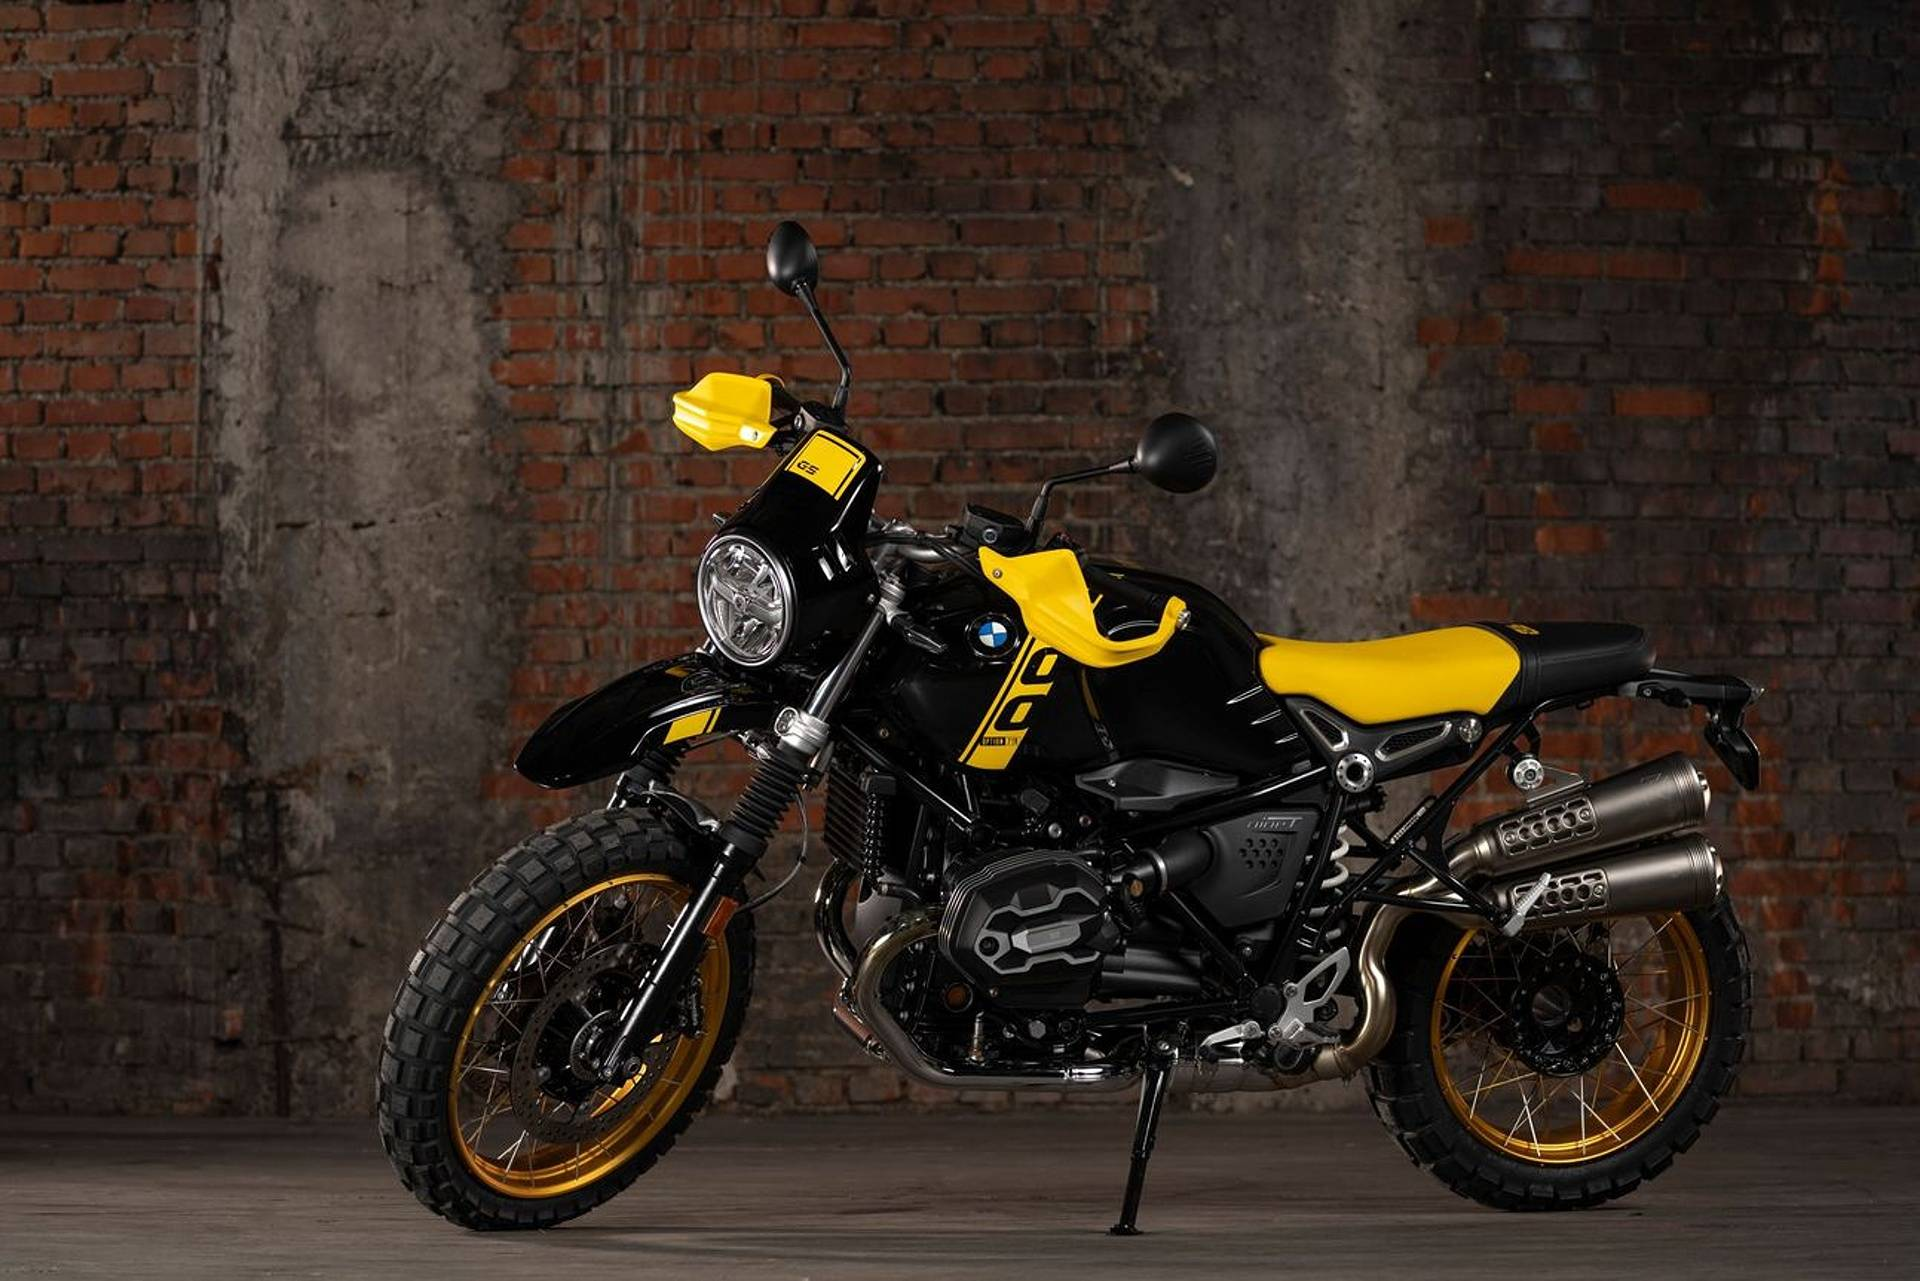 R nineT Urban GS EDITION 40 LET GS